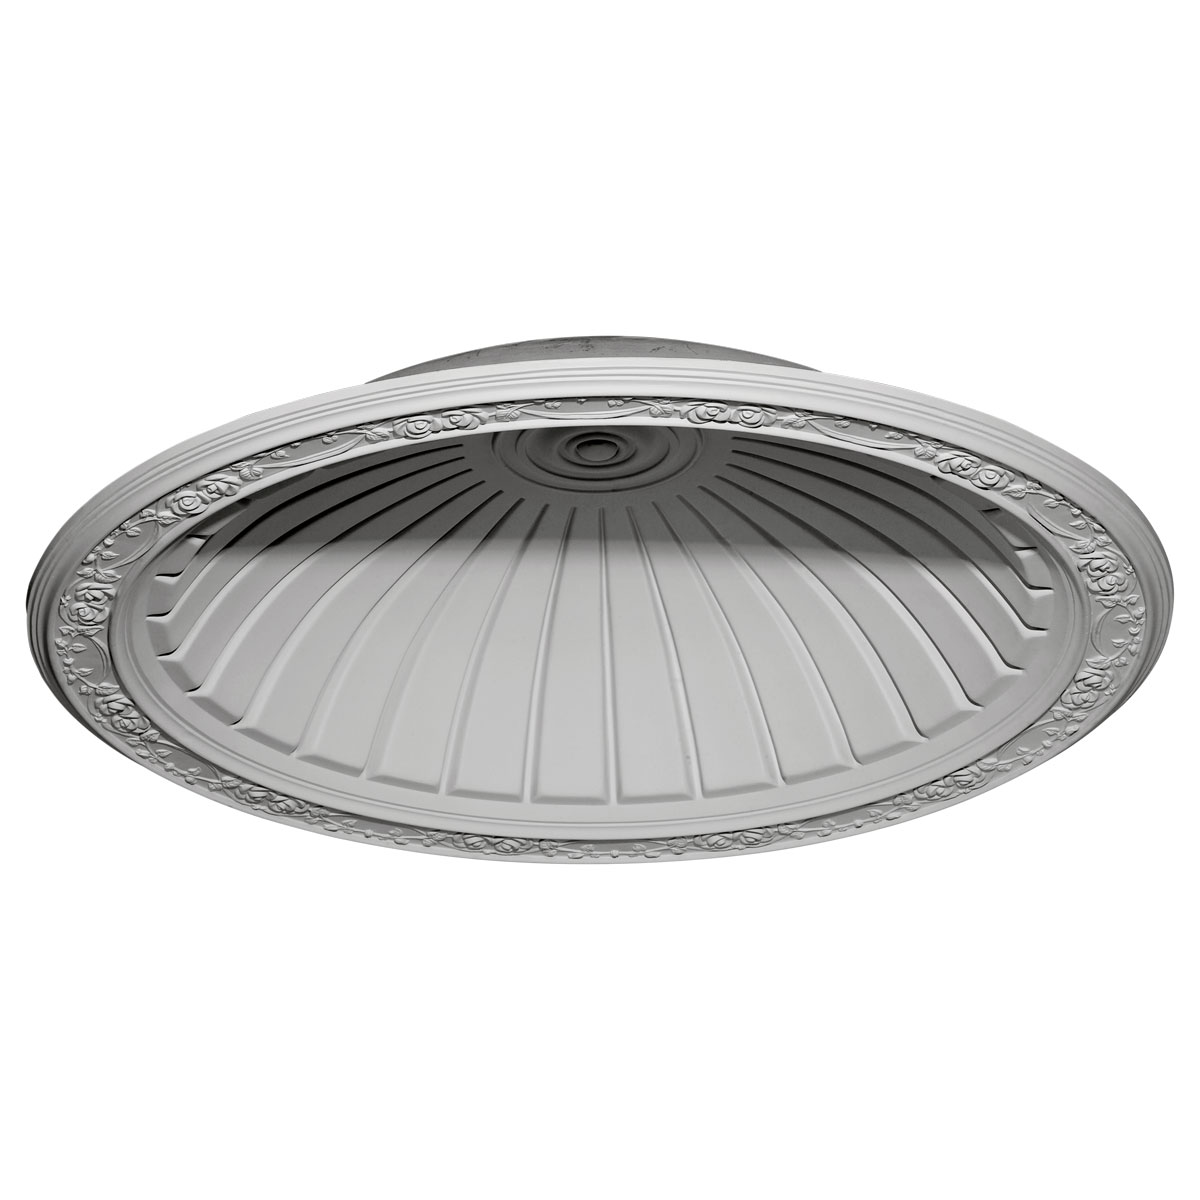 """DOME42HA 42-7/8""""OD x 35-3/8""""ID x 8-1/4""""D Hamilton Recessed Mount Ceiling Dome (36-1/2"""" Diameter x 9-1/4""""D Rough Opening)"""